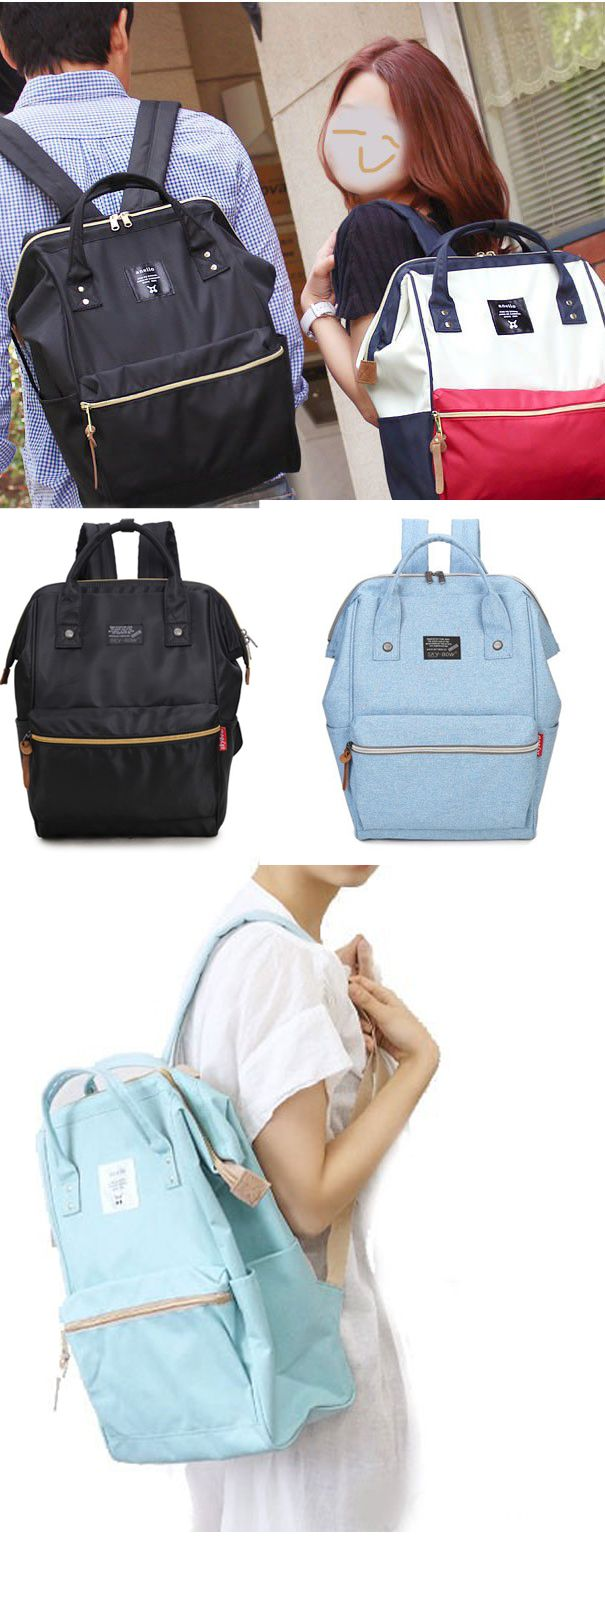 Fashion Oxford Large Capacity College Handbag Travel Backpack for Women backpack for college student best,backpack for college fashion,backpack for girls teens,backpack for girls school,backpack for girls fashion,backpack for girls cute,backpack gear,backpack hiking,backpack hiking women,backpack laptop,backpack laptop women,backpack laptop women work bags,backpack laptop women fashion,backpack laptop women travel,backpack laptop women fashion,backpack luggage,backpack luggage strap,